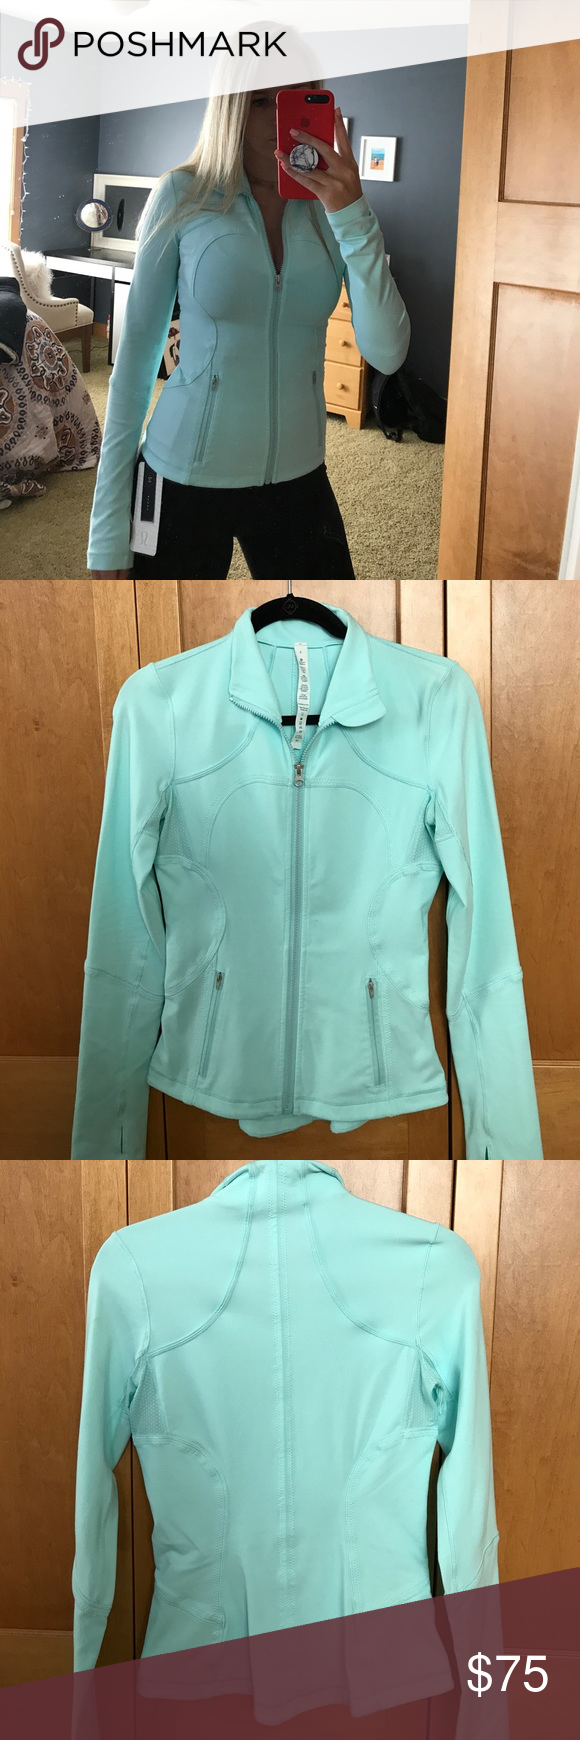 Lululemon define jacket New define jacket. Worn once. Sold out color, no longer made anymore. Size 4 & in perfect condition. I would describe the color as a mint blue. lululemon athletica Tops Sweatshirts & Hoodies